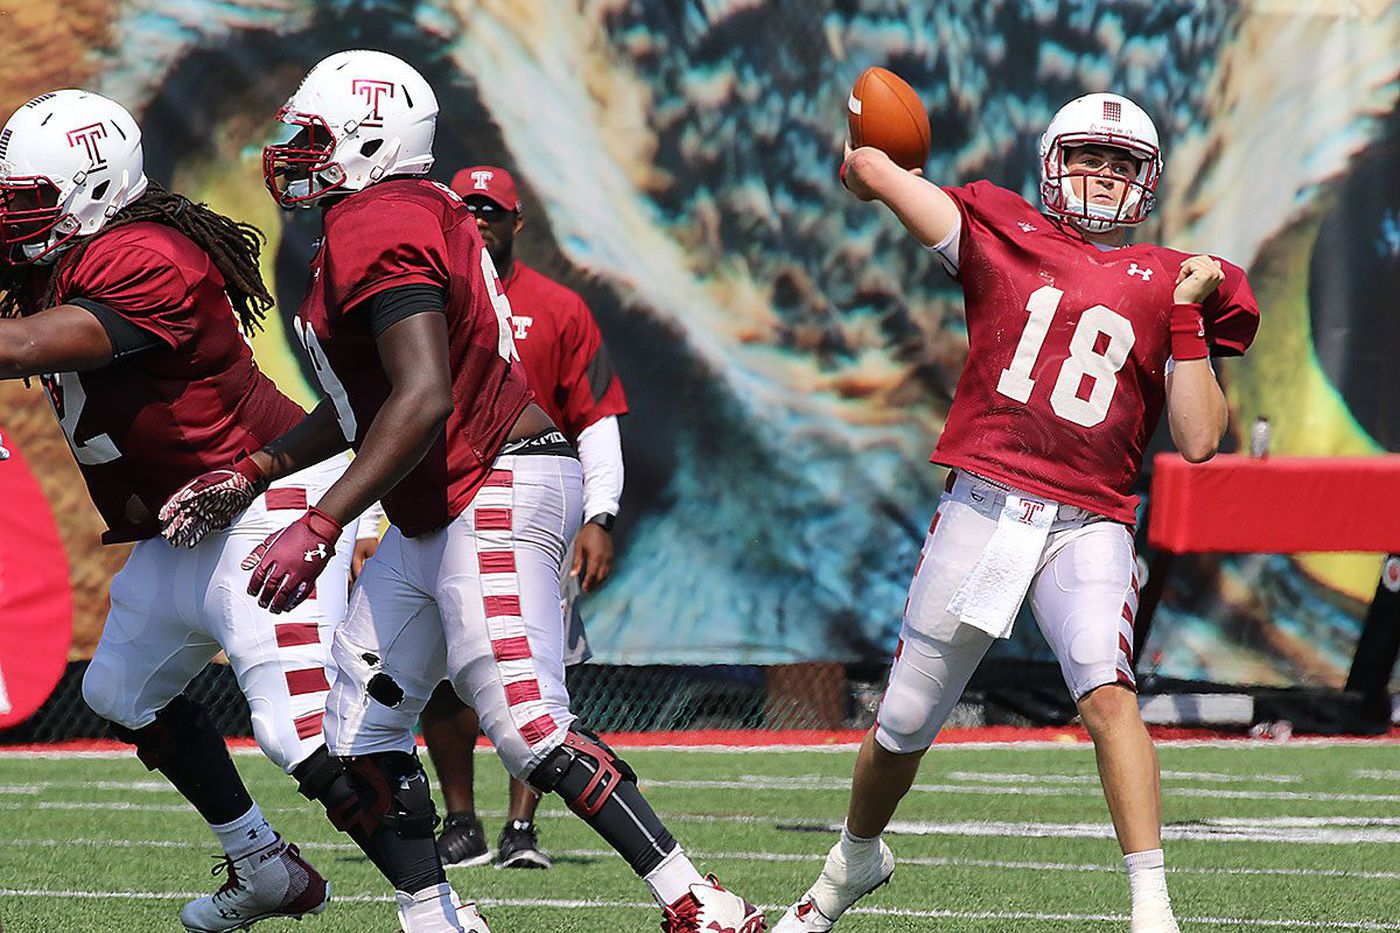 Frank Nutile to again start at QB for Temple